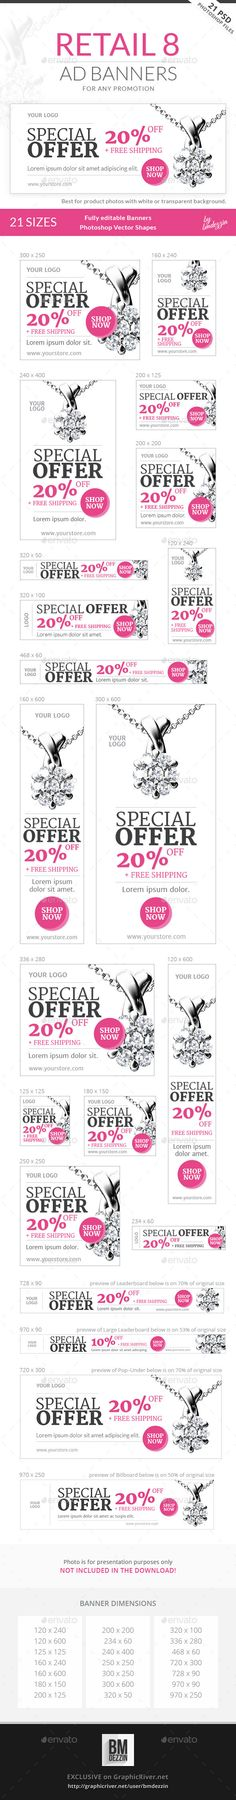 Retail 8 Ad Banners Template #design Download: http://graphicriver.net/item/retail-8-ad-banners/12617940?ref=ksioks